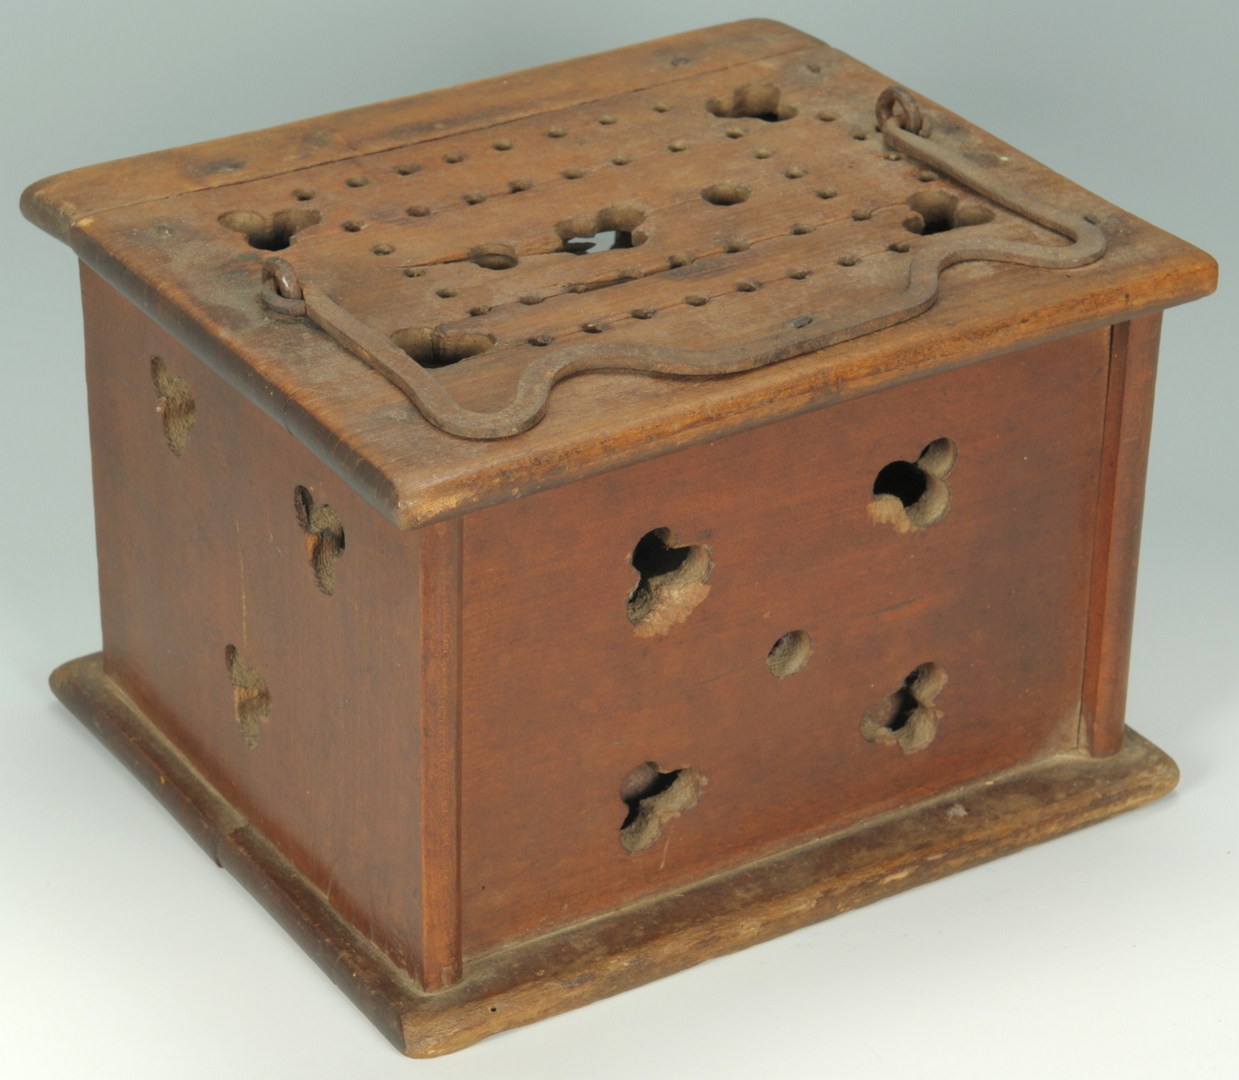 Lot 100: 19th Cent. Candle Mold, Foot Warmer & Copper Kettl